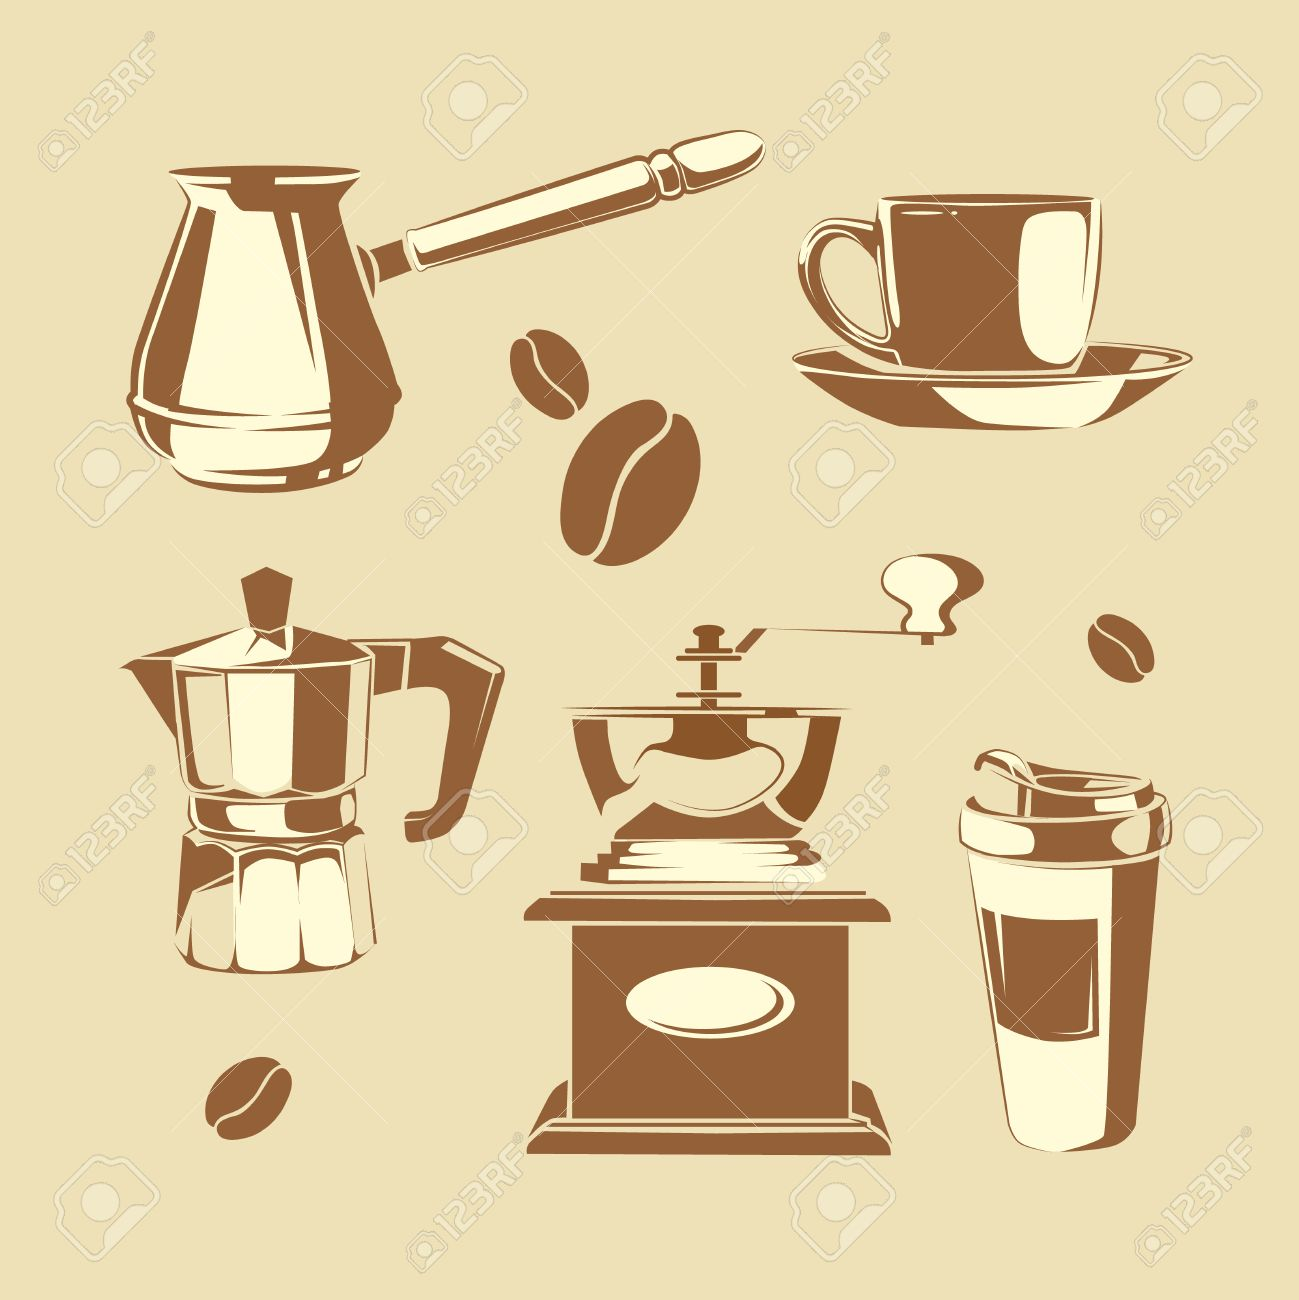 Vector Art - Coffee mill. hand drawn sketch style. vintage black vector  engraving illustration for label, web. isolated on white background. EPS  clipart gg85825707 - GoGraph